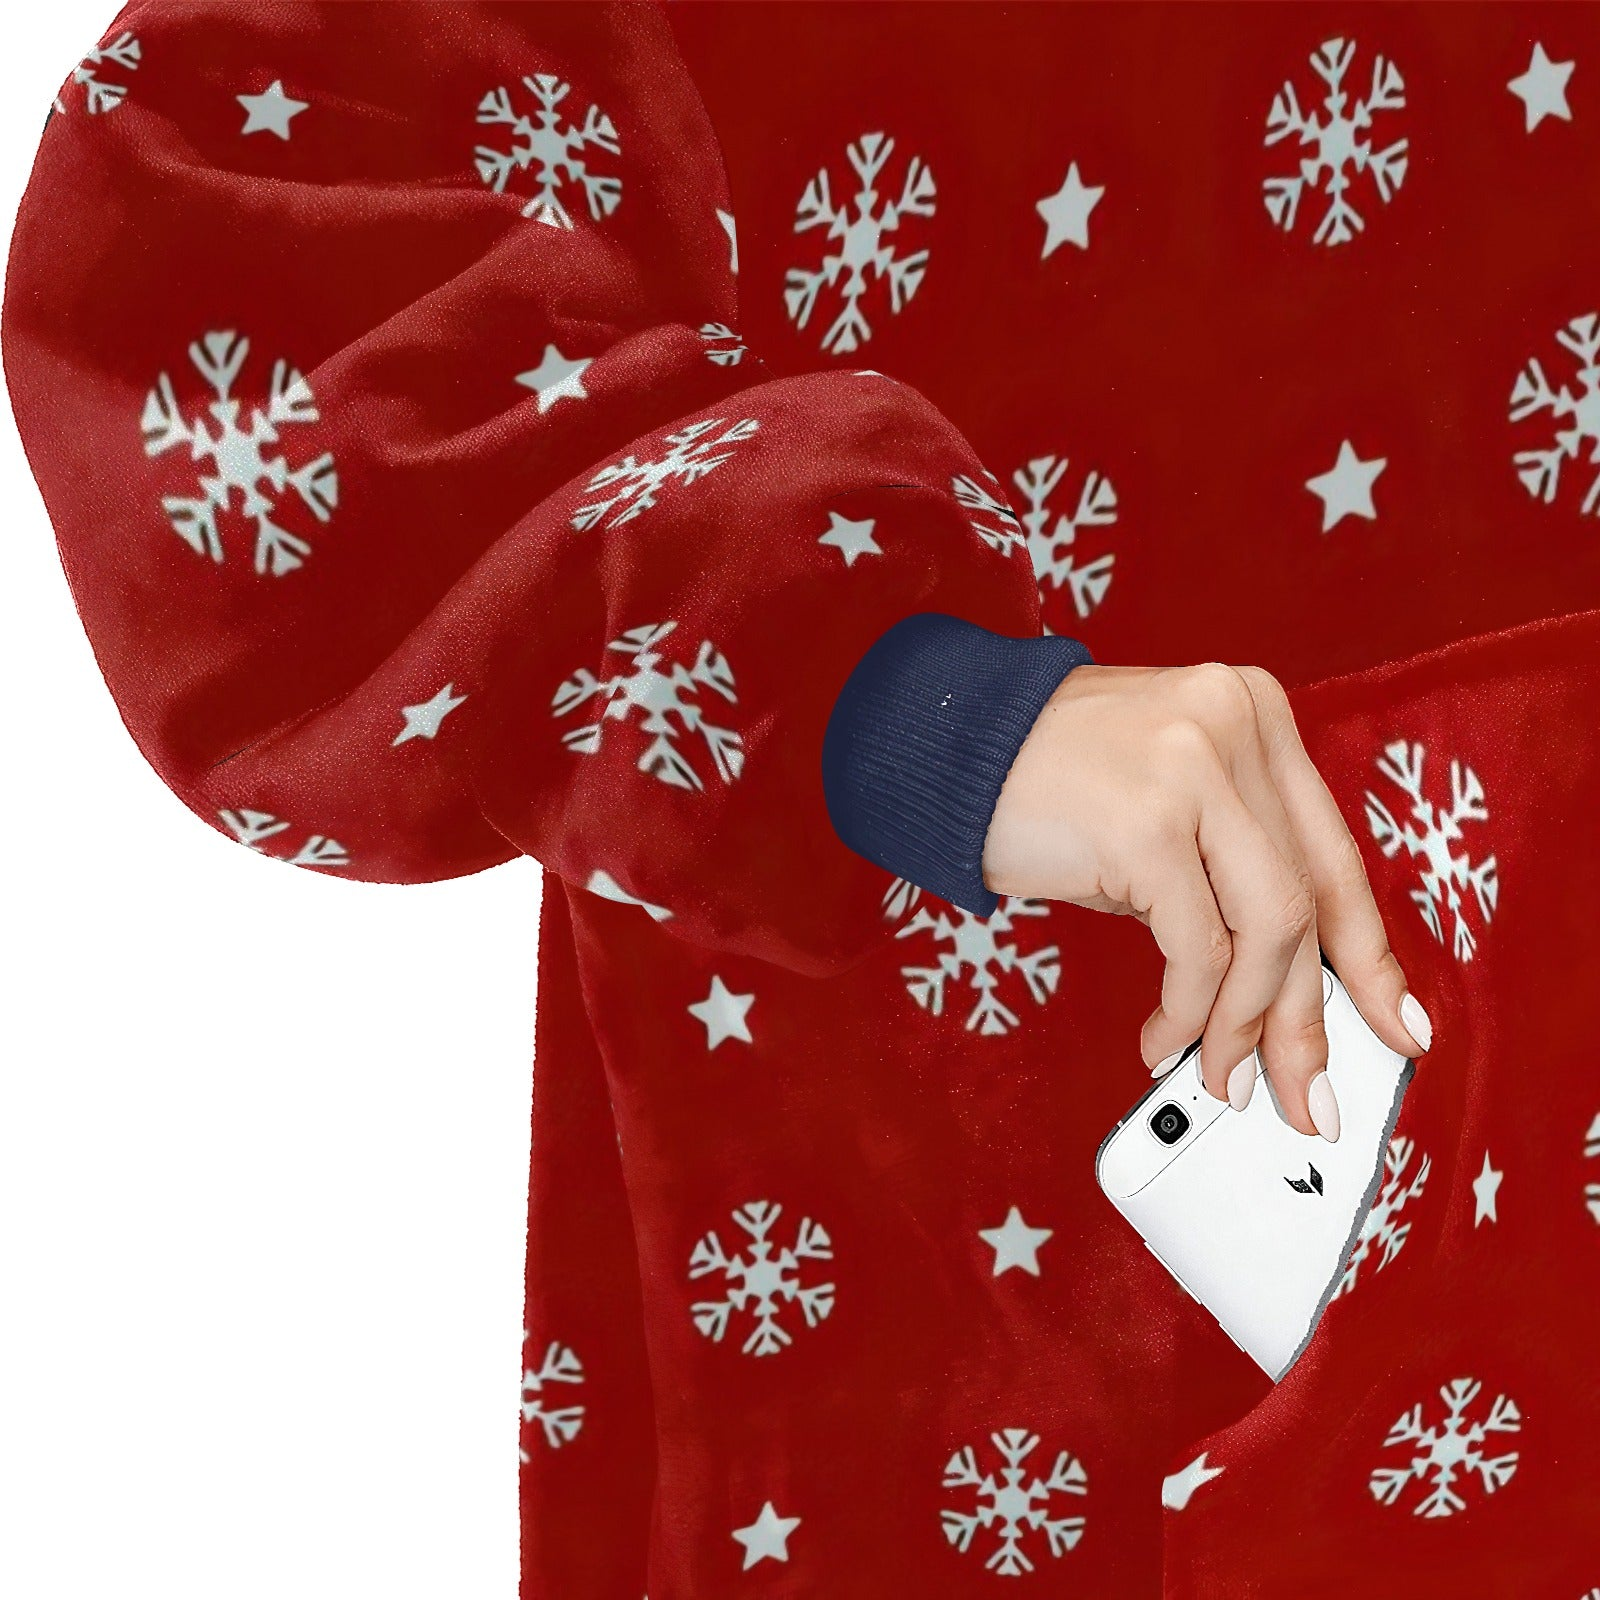 Red Background With White Snowflakes And Stars Pattern Hoodie Blanket Sweatshirt